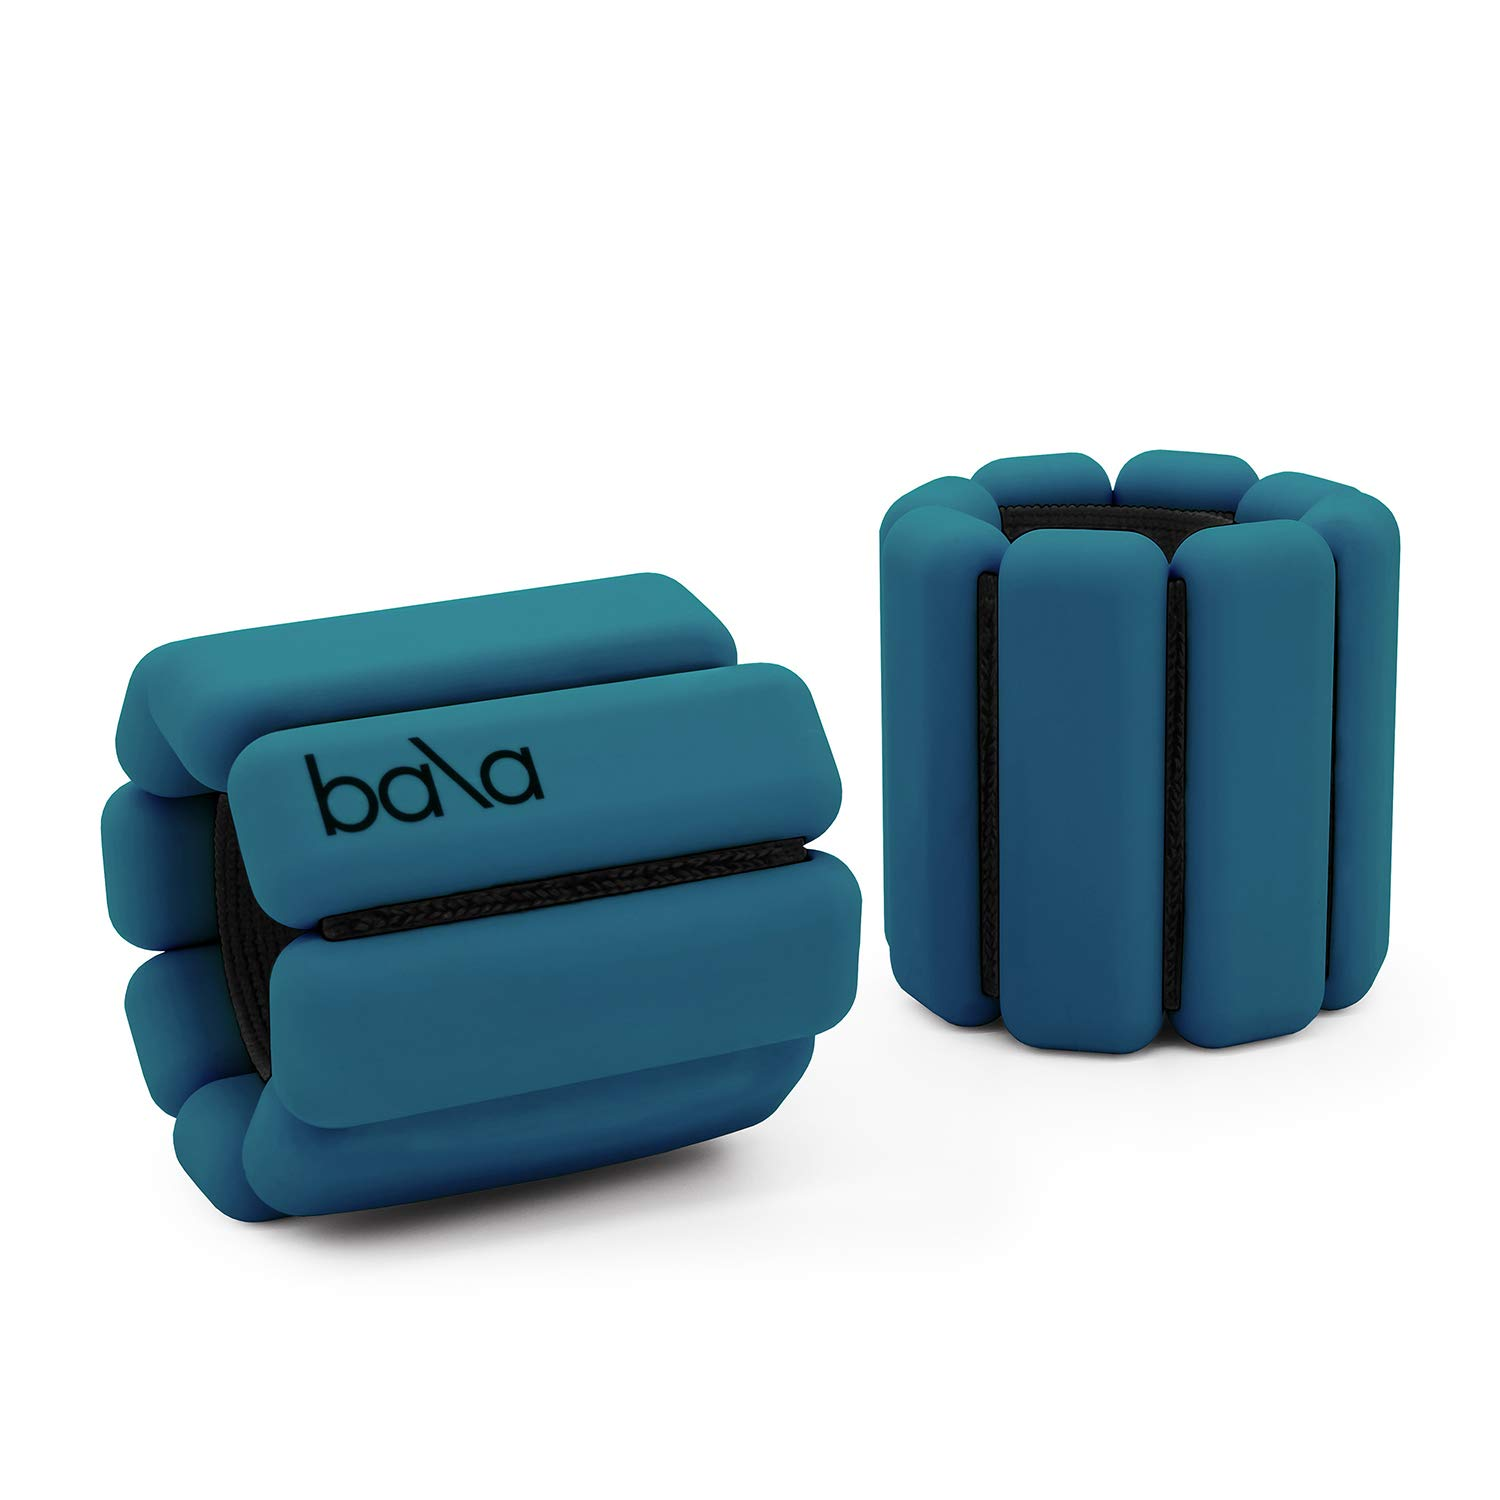 Bala Bangles | Fully Adjustable Wearable Wrist & Ankle Weights | Yoga, Dance, Running, Barre, Pilates, Cardio, Aerobics, Walking | 1 Pound Each, 2 Per Set (Deep Blue)